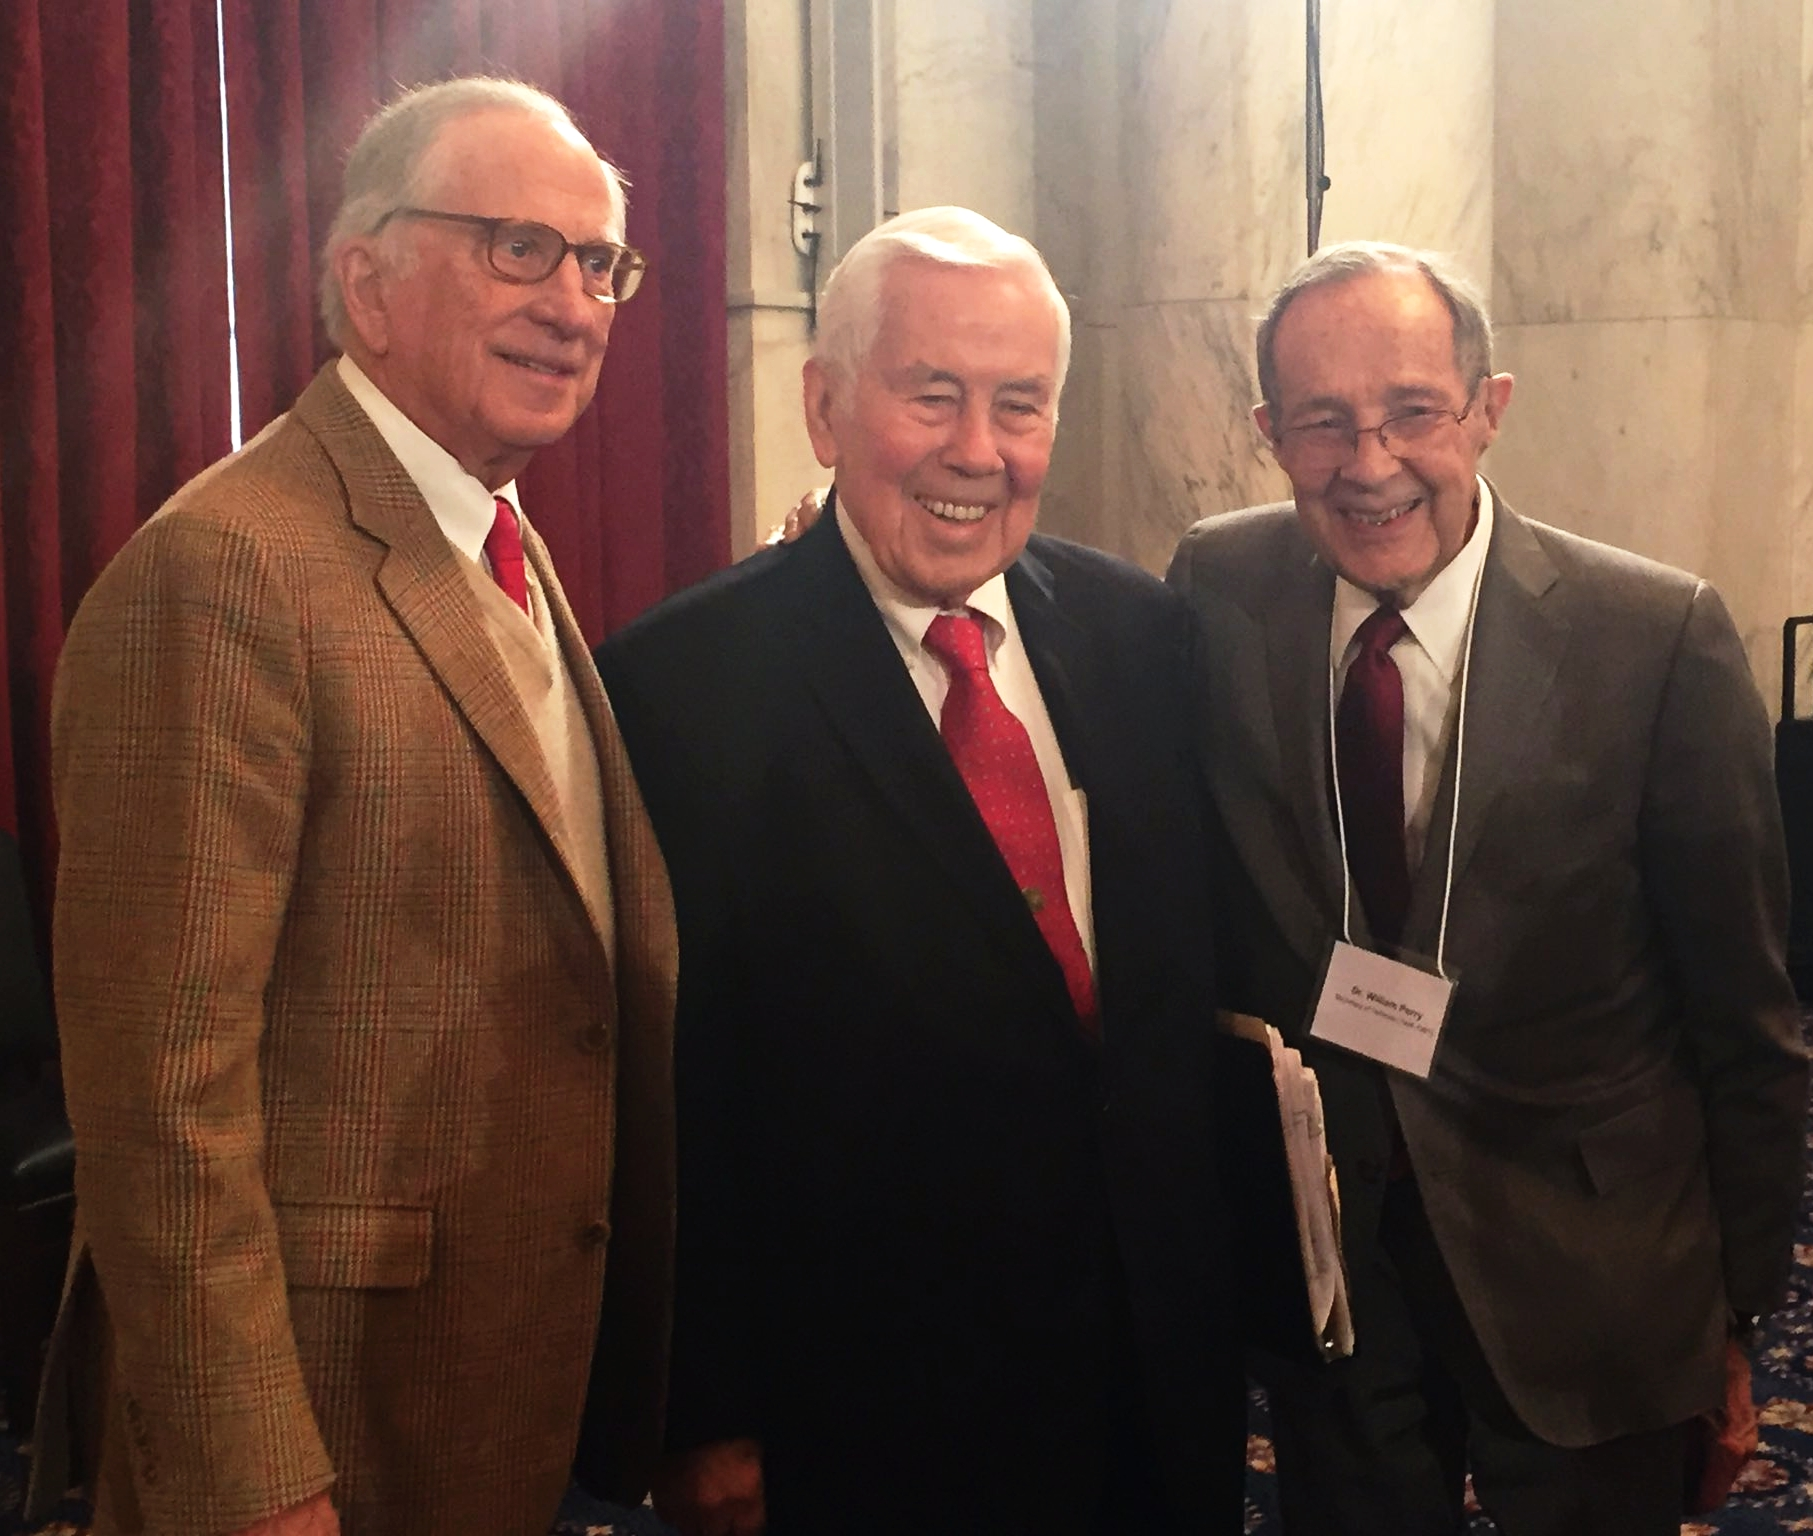 Sam Nunn, Richard Lugar, and William Perry at the Nunn-Lugar award ceremony